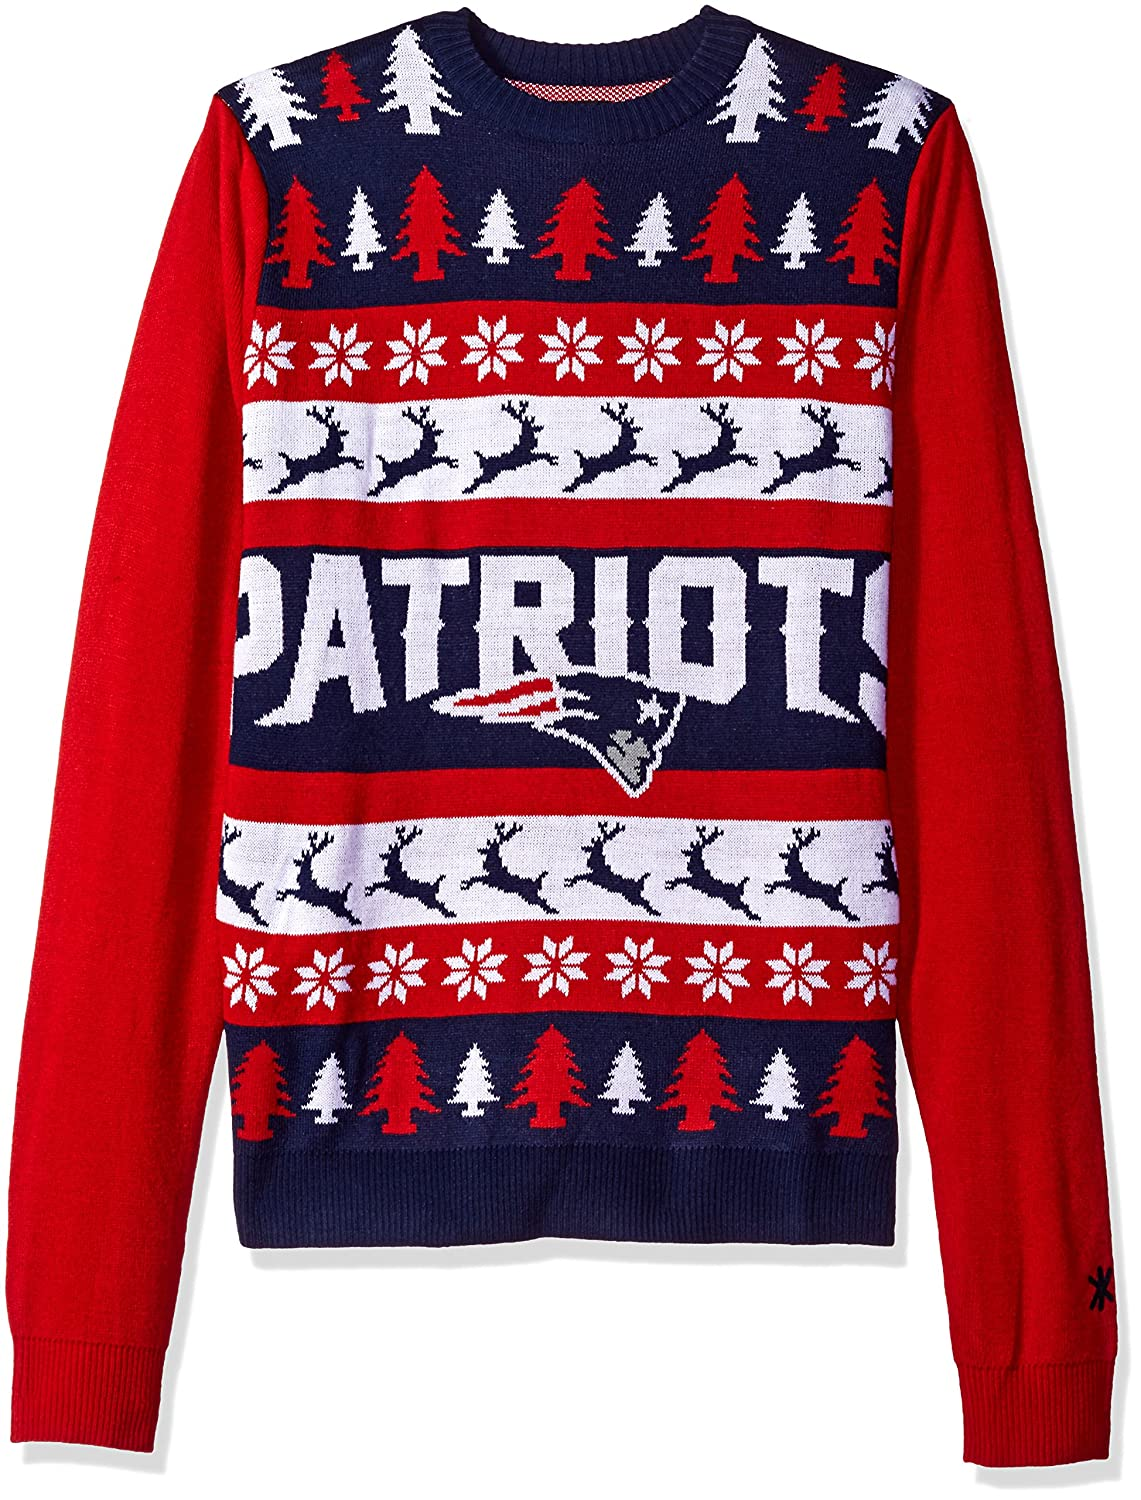 NFL One Too Many Ugly Sweater Foco SWTNFUGYWMBRVL-P